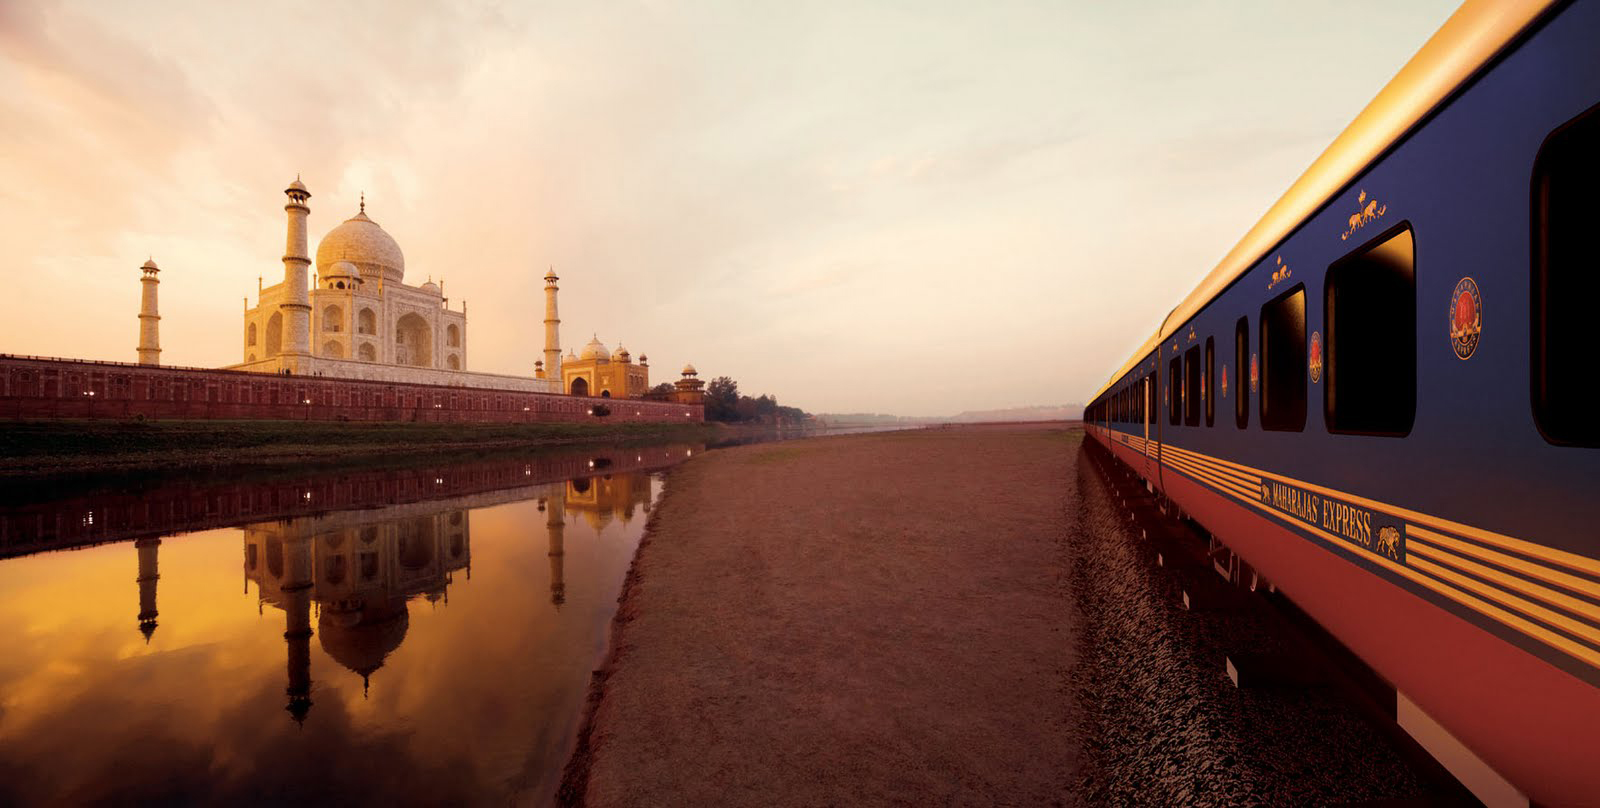 Maharajas Express – The Heritage of India